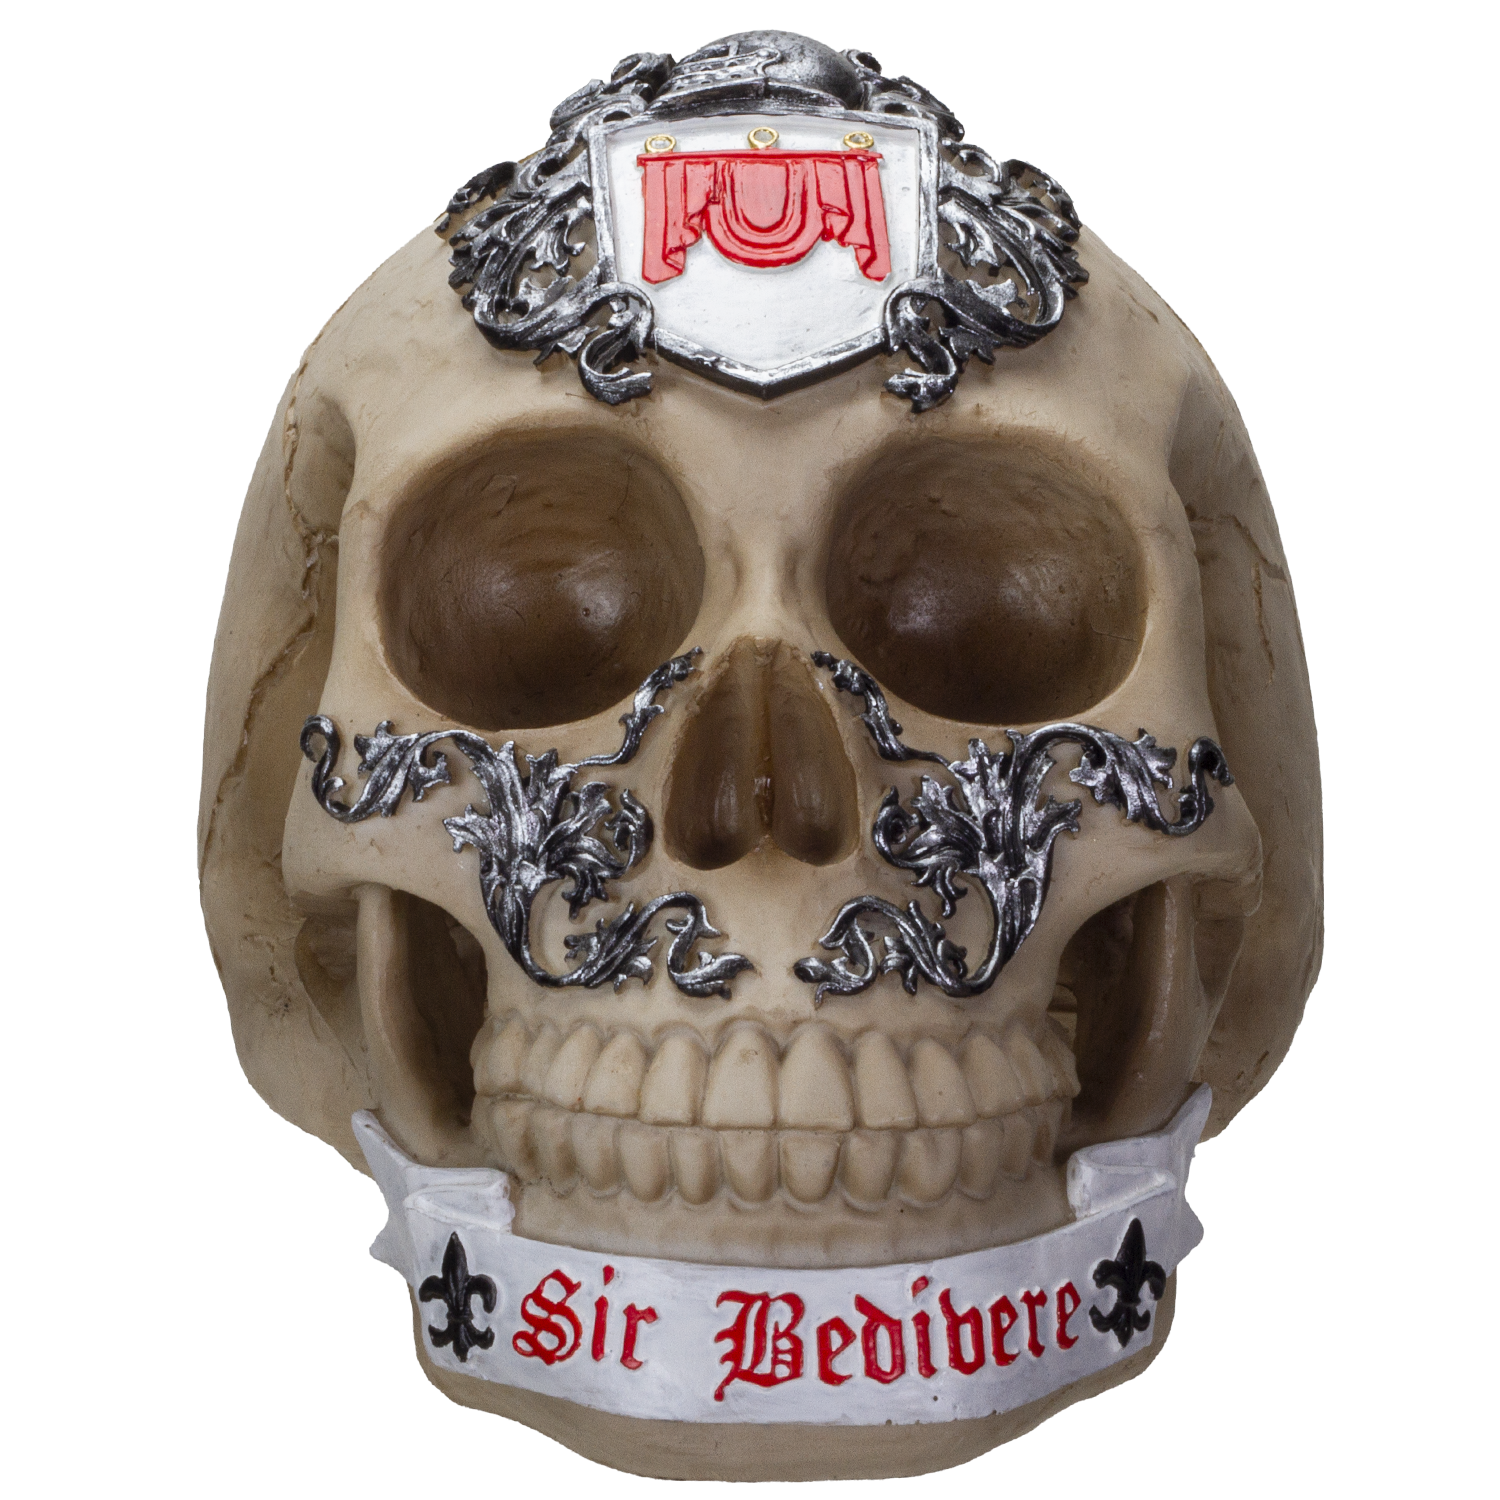 The Knights of the Round Table King Arthur's Knight Skulls Sir Bedivere Resin Skull Figurine